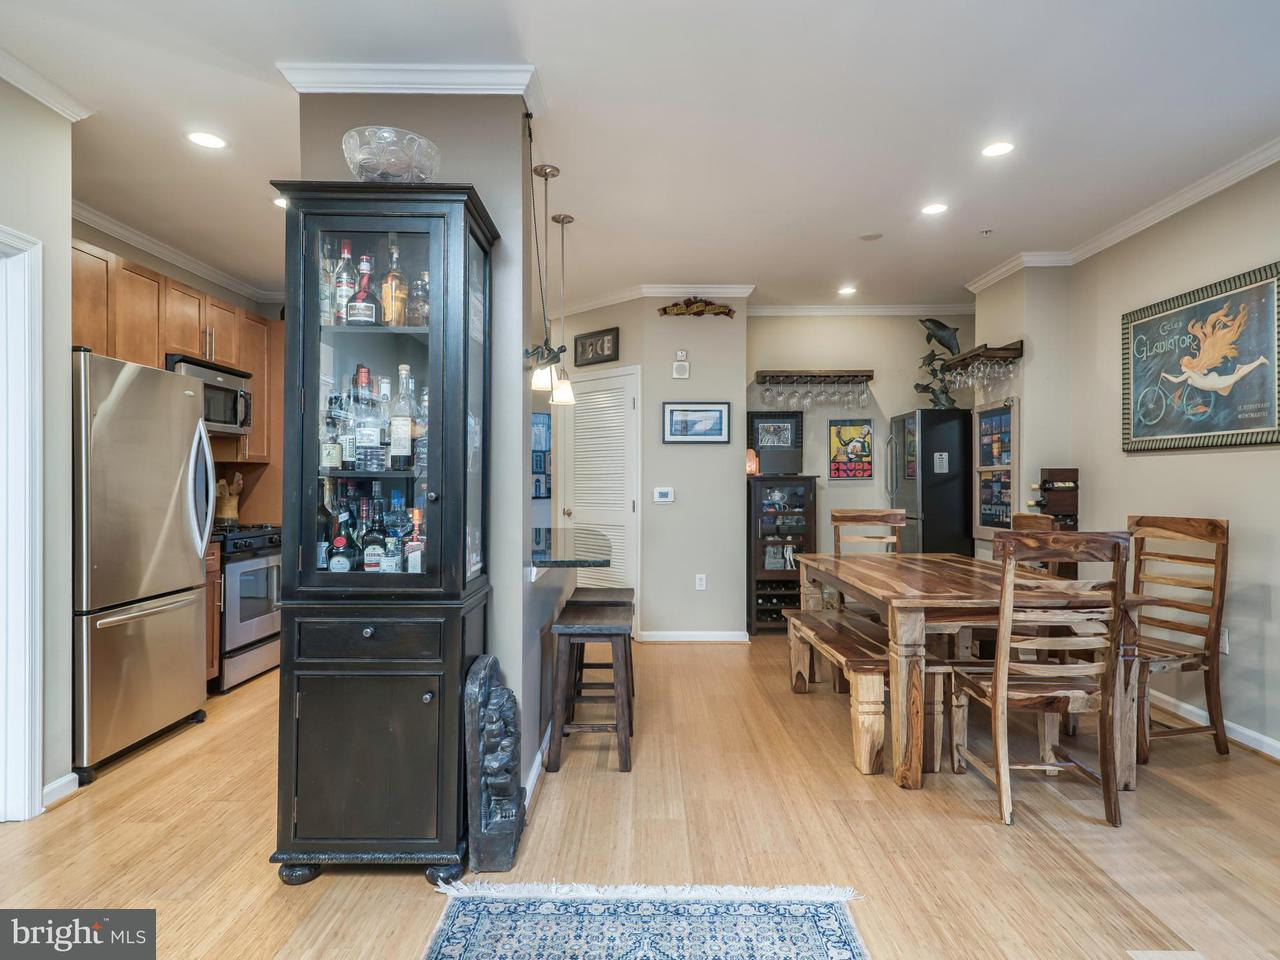 Additional photo for property listing at 444 Broad St #313 444 Broad St #313 Falls Church, 버지니아 22046 미국